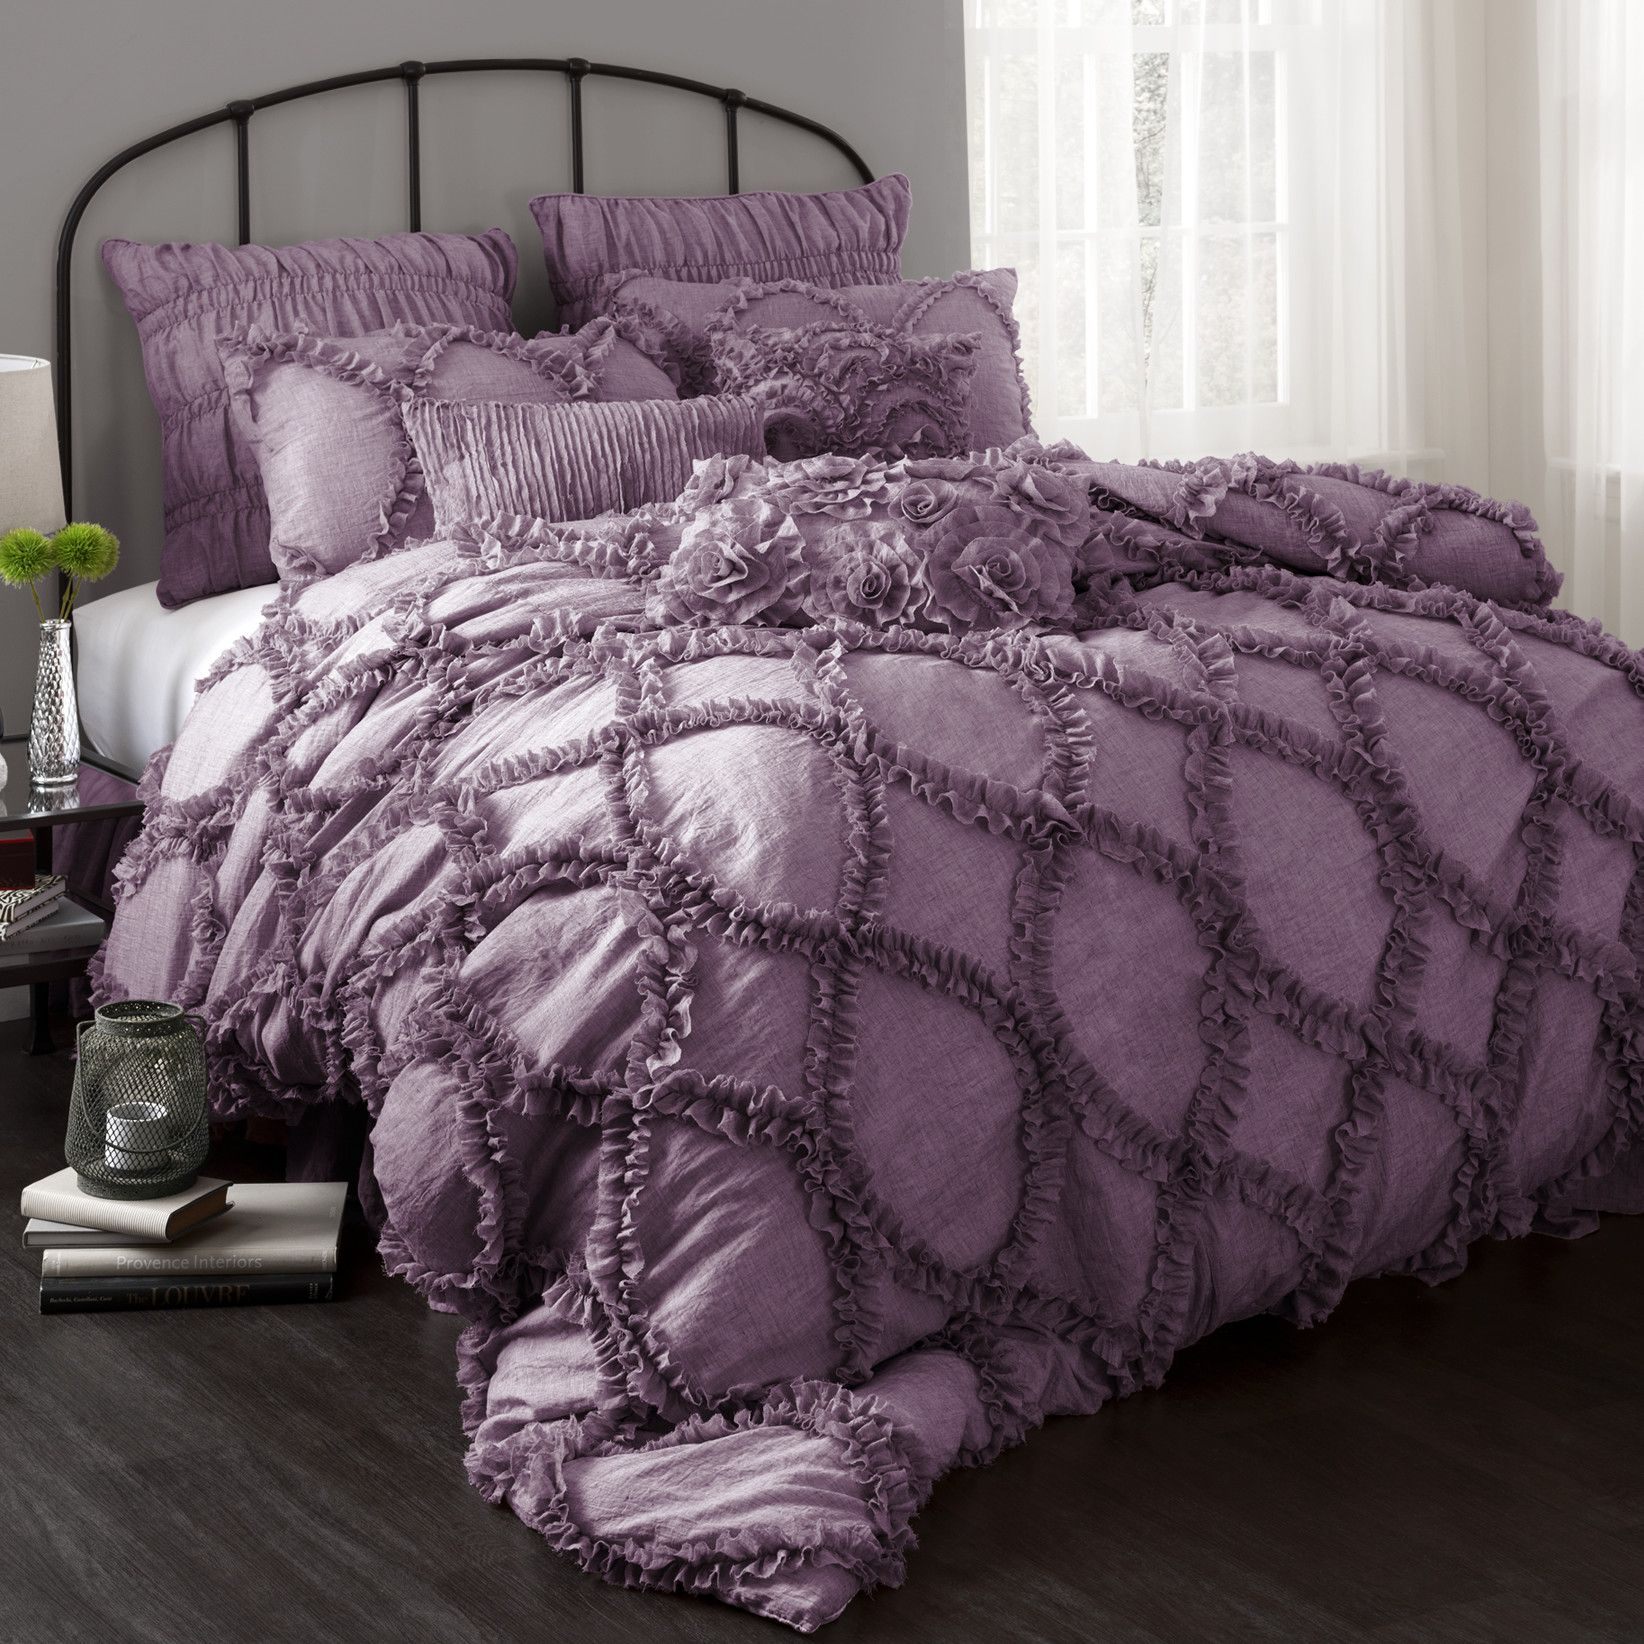 incredible comforter dreaded queen king ideas black snif grey inspiration bed purple and sheets size sets inspiring for bedding